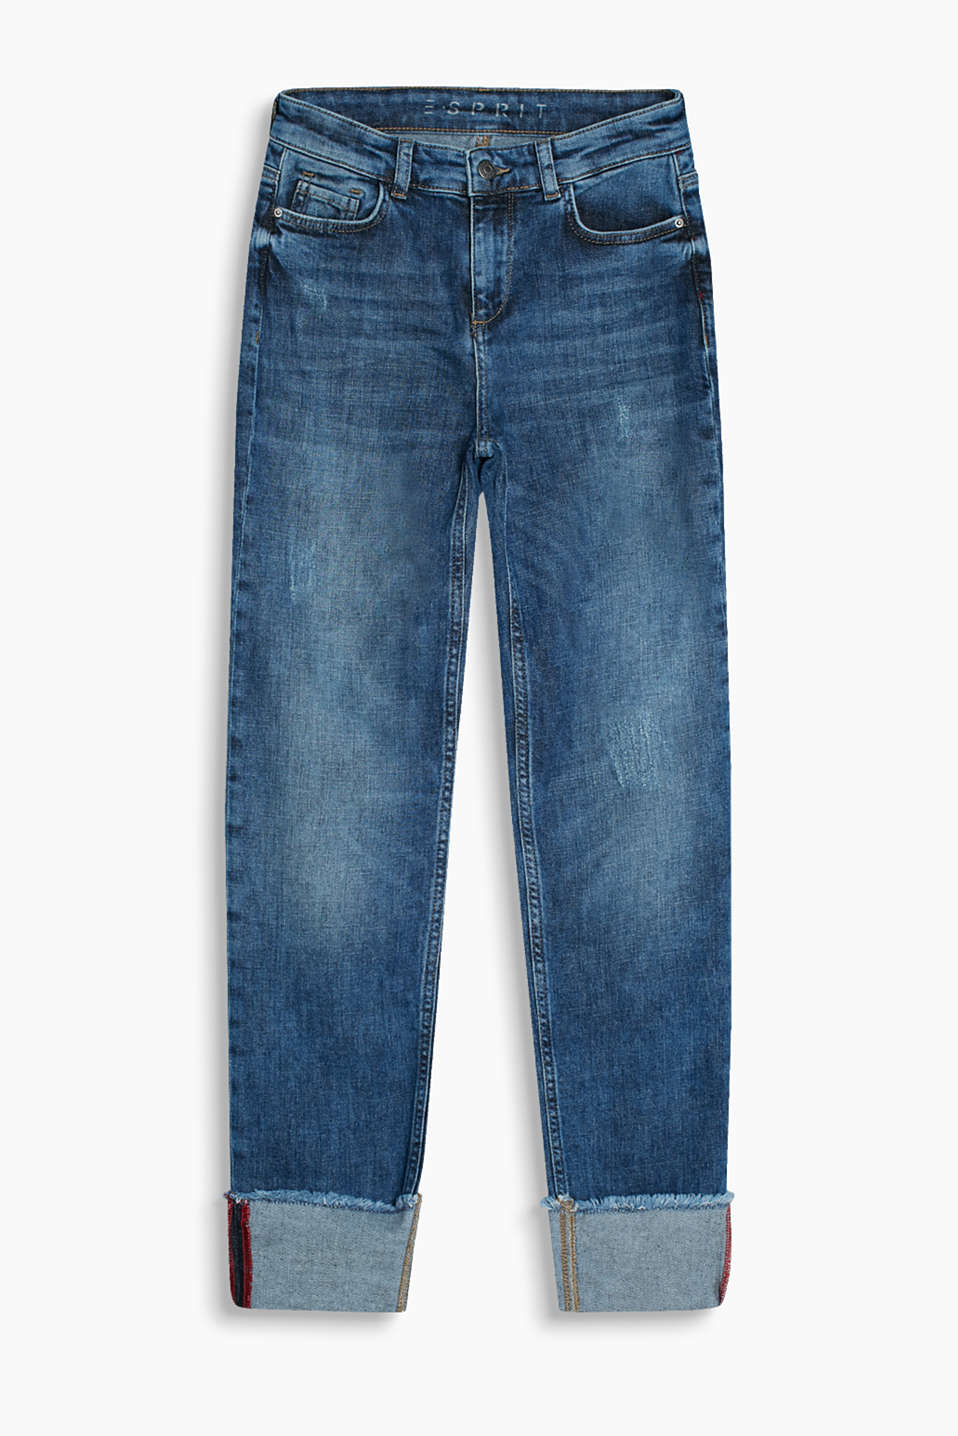 Lightweight stretch jeans with a vintage finish and variable, frayed turn-up hems